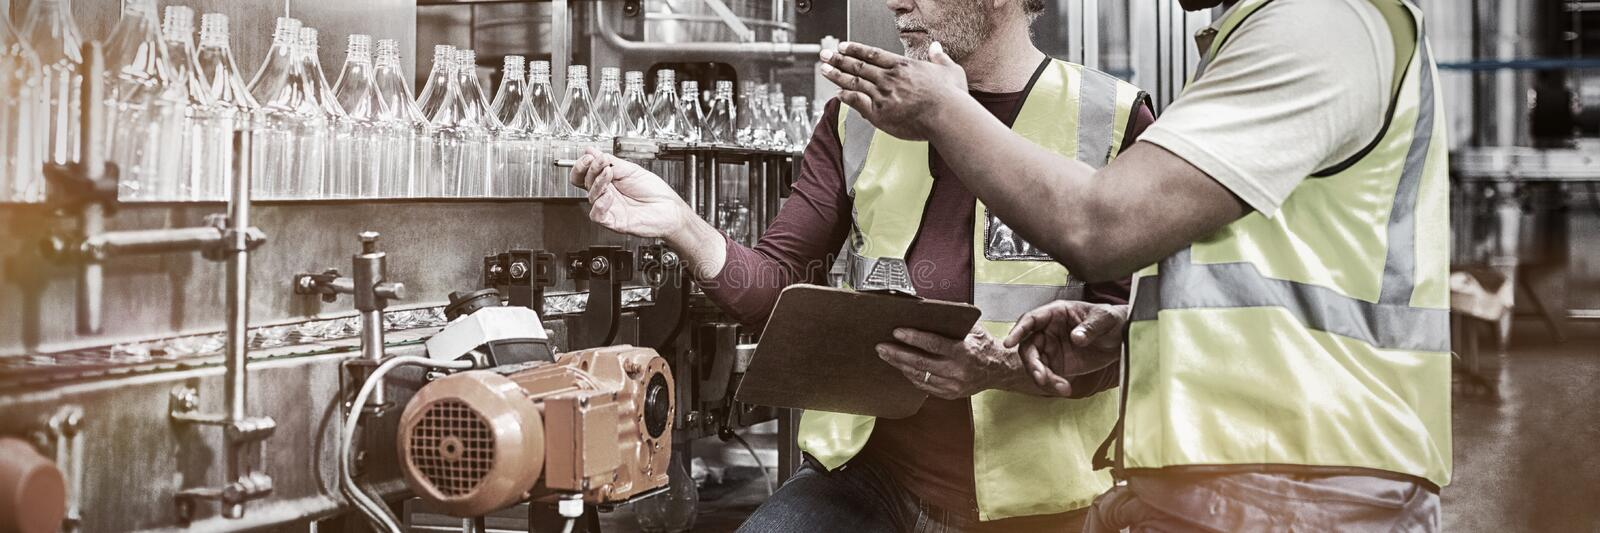 Two factory workers discussing while monitoring drinks production line royalty free stock photography